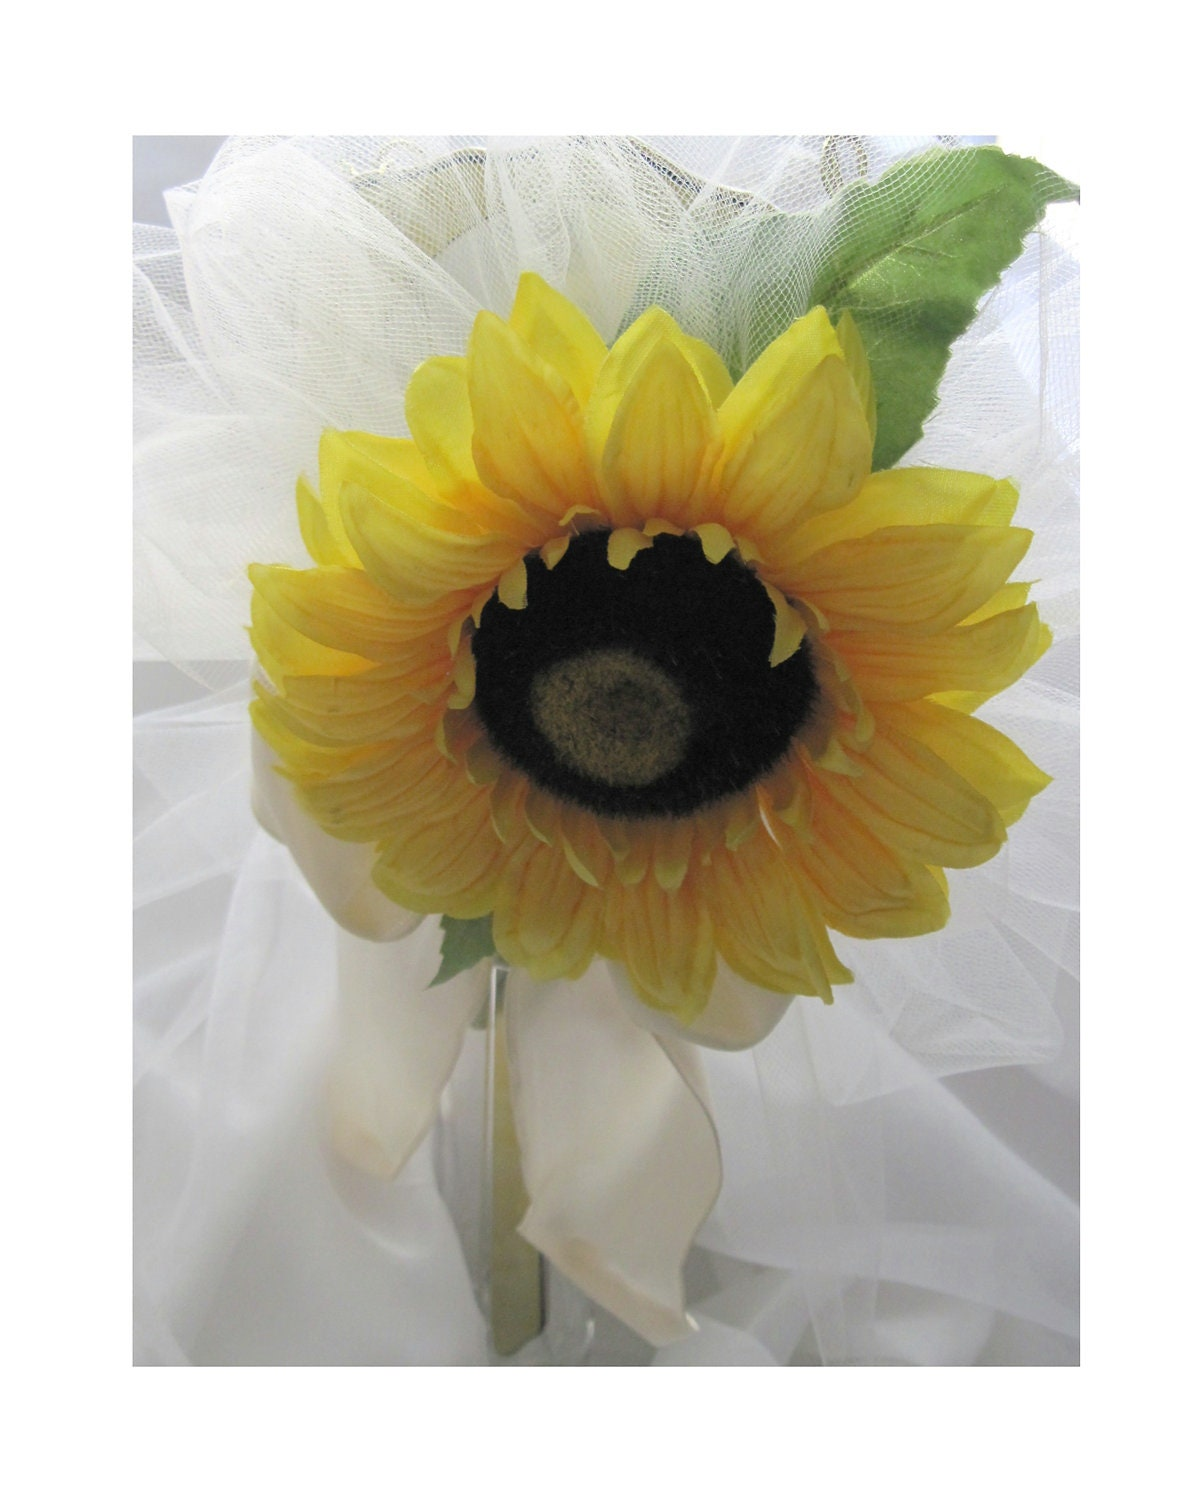 Wedding Bouquet, Silky Golden Sunflower Blossom, Green Leaves, Attaches to Wedding Art  Mirrors, For Bride, Bridesmaid, Or Maid of Honor